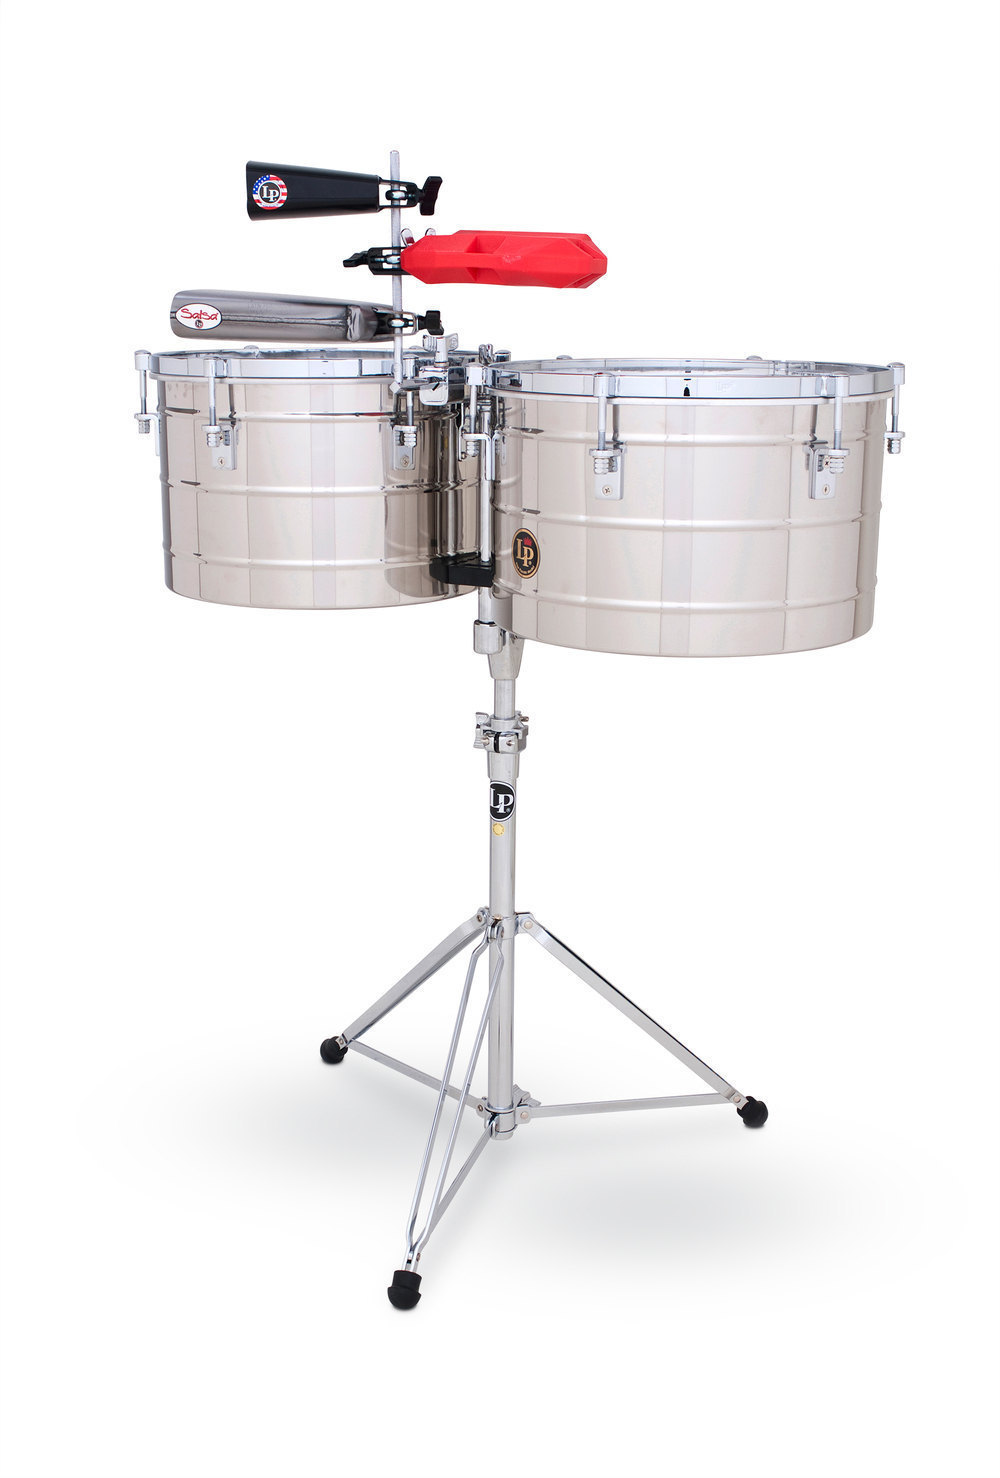 Billede af Timbals Tito Puente Thunder Timbs Stainless Steel